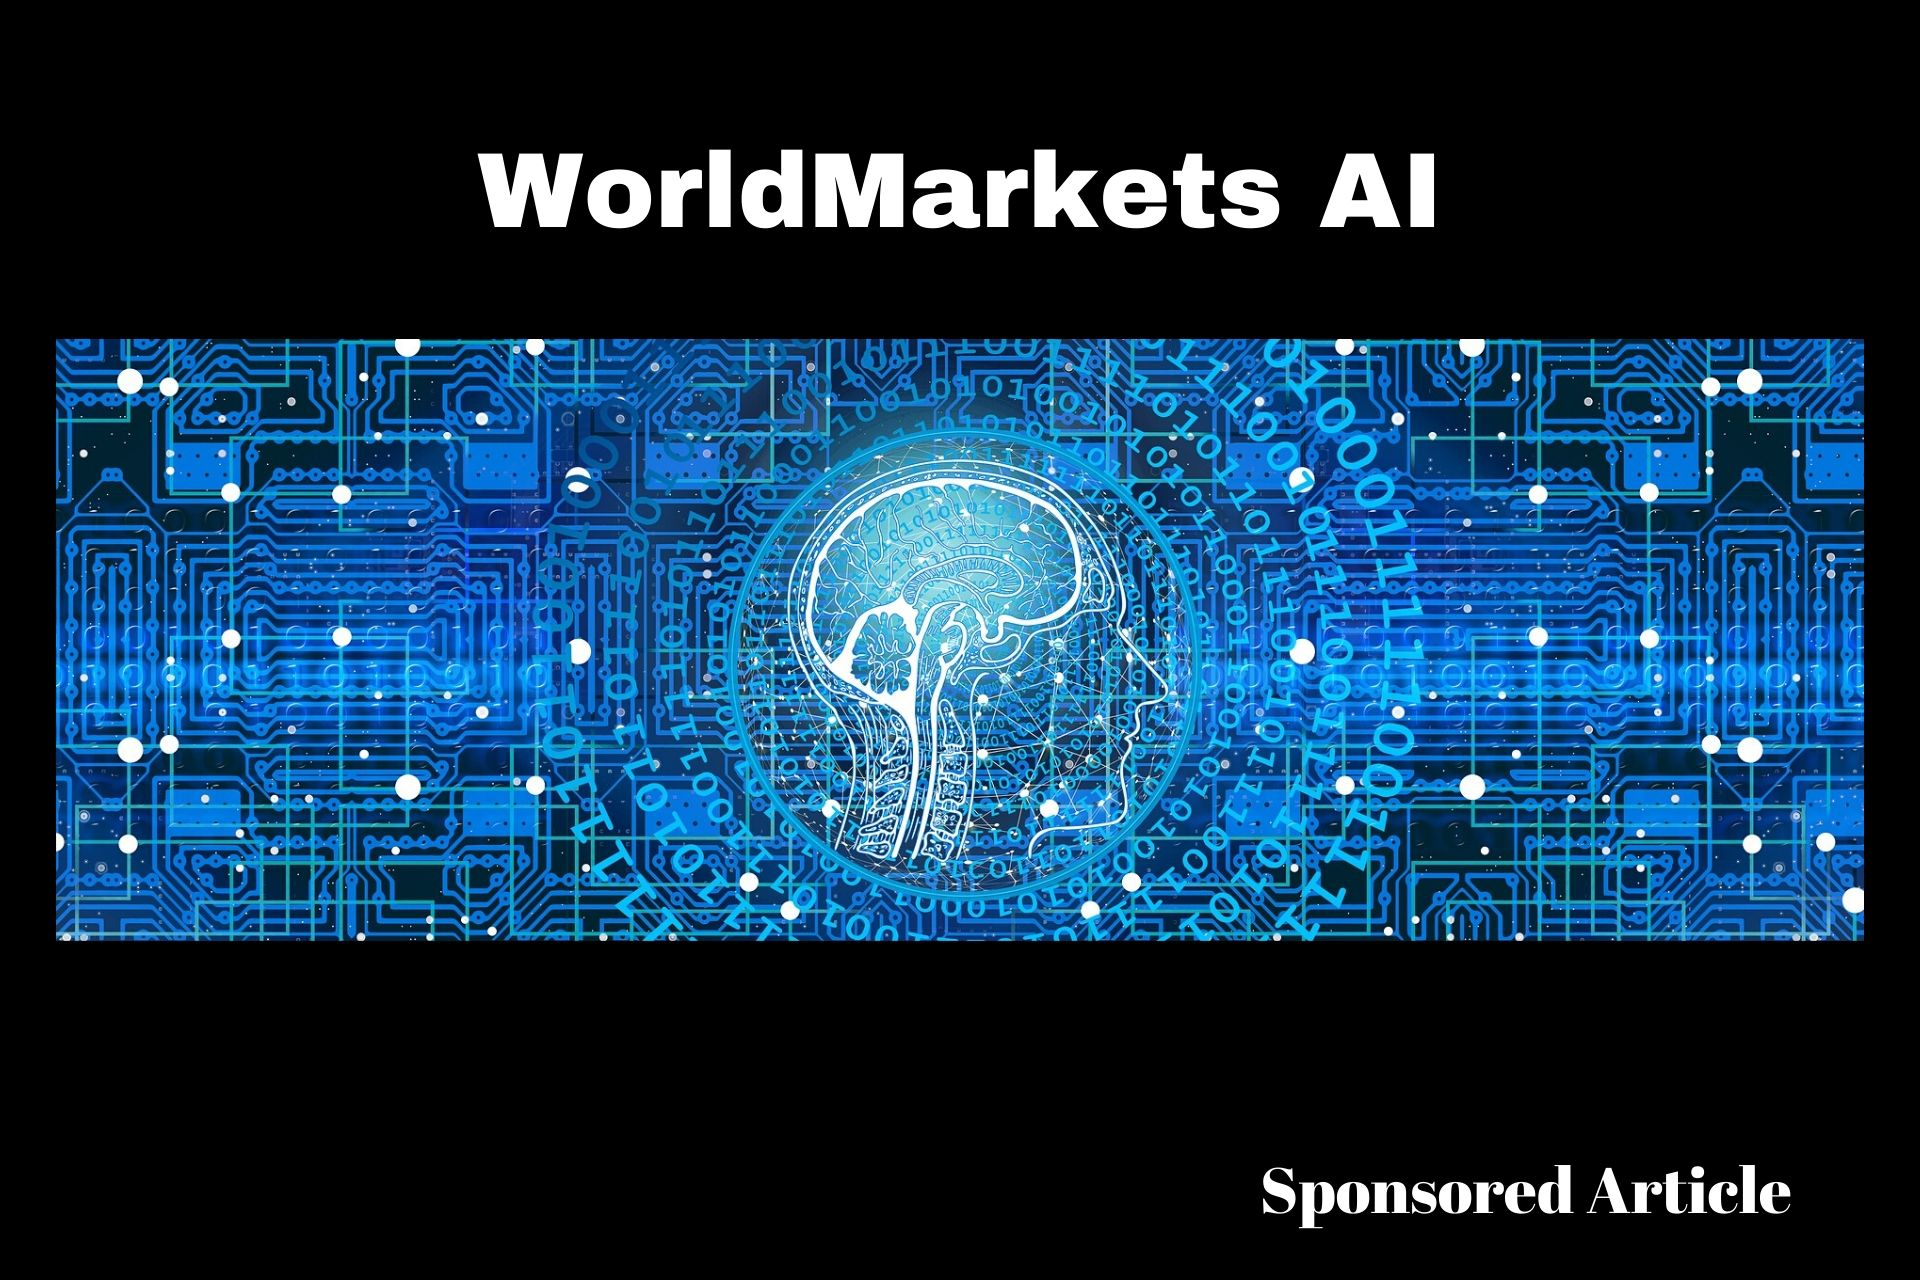 worldmarkets platform